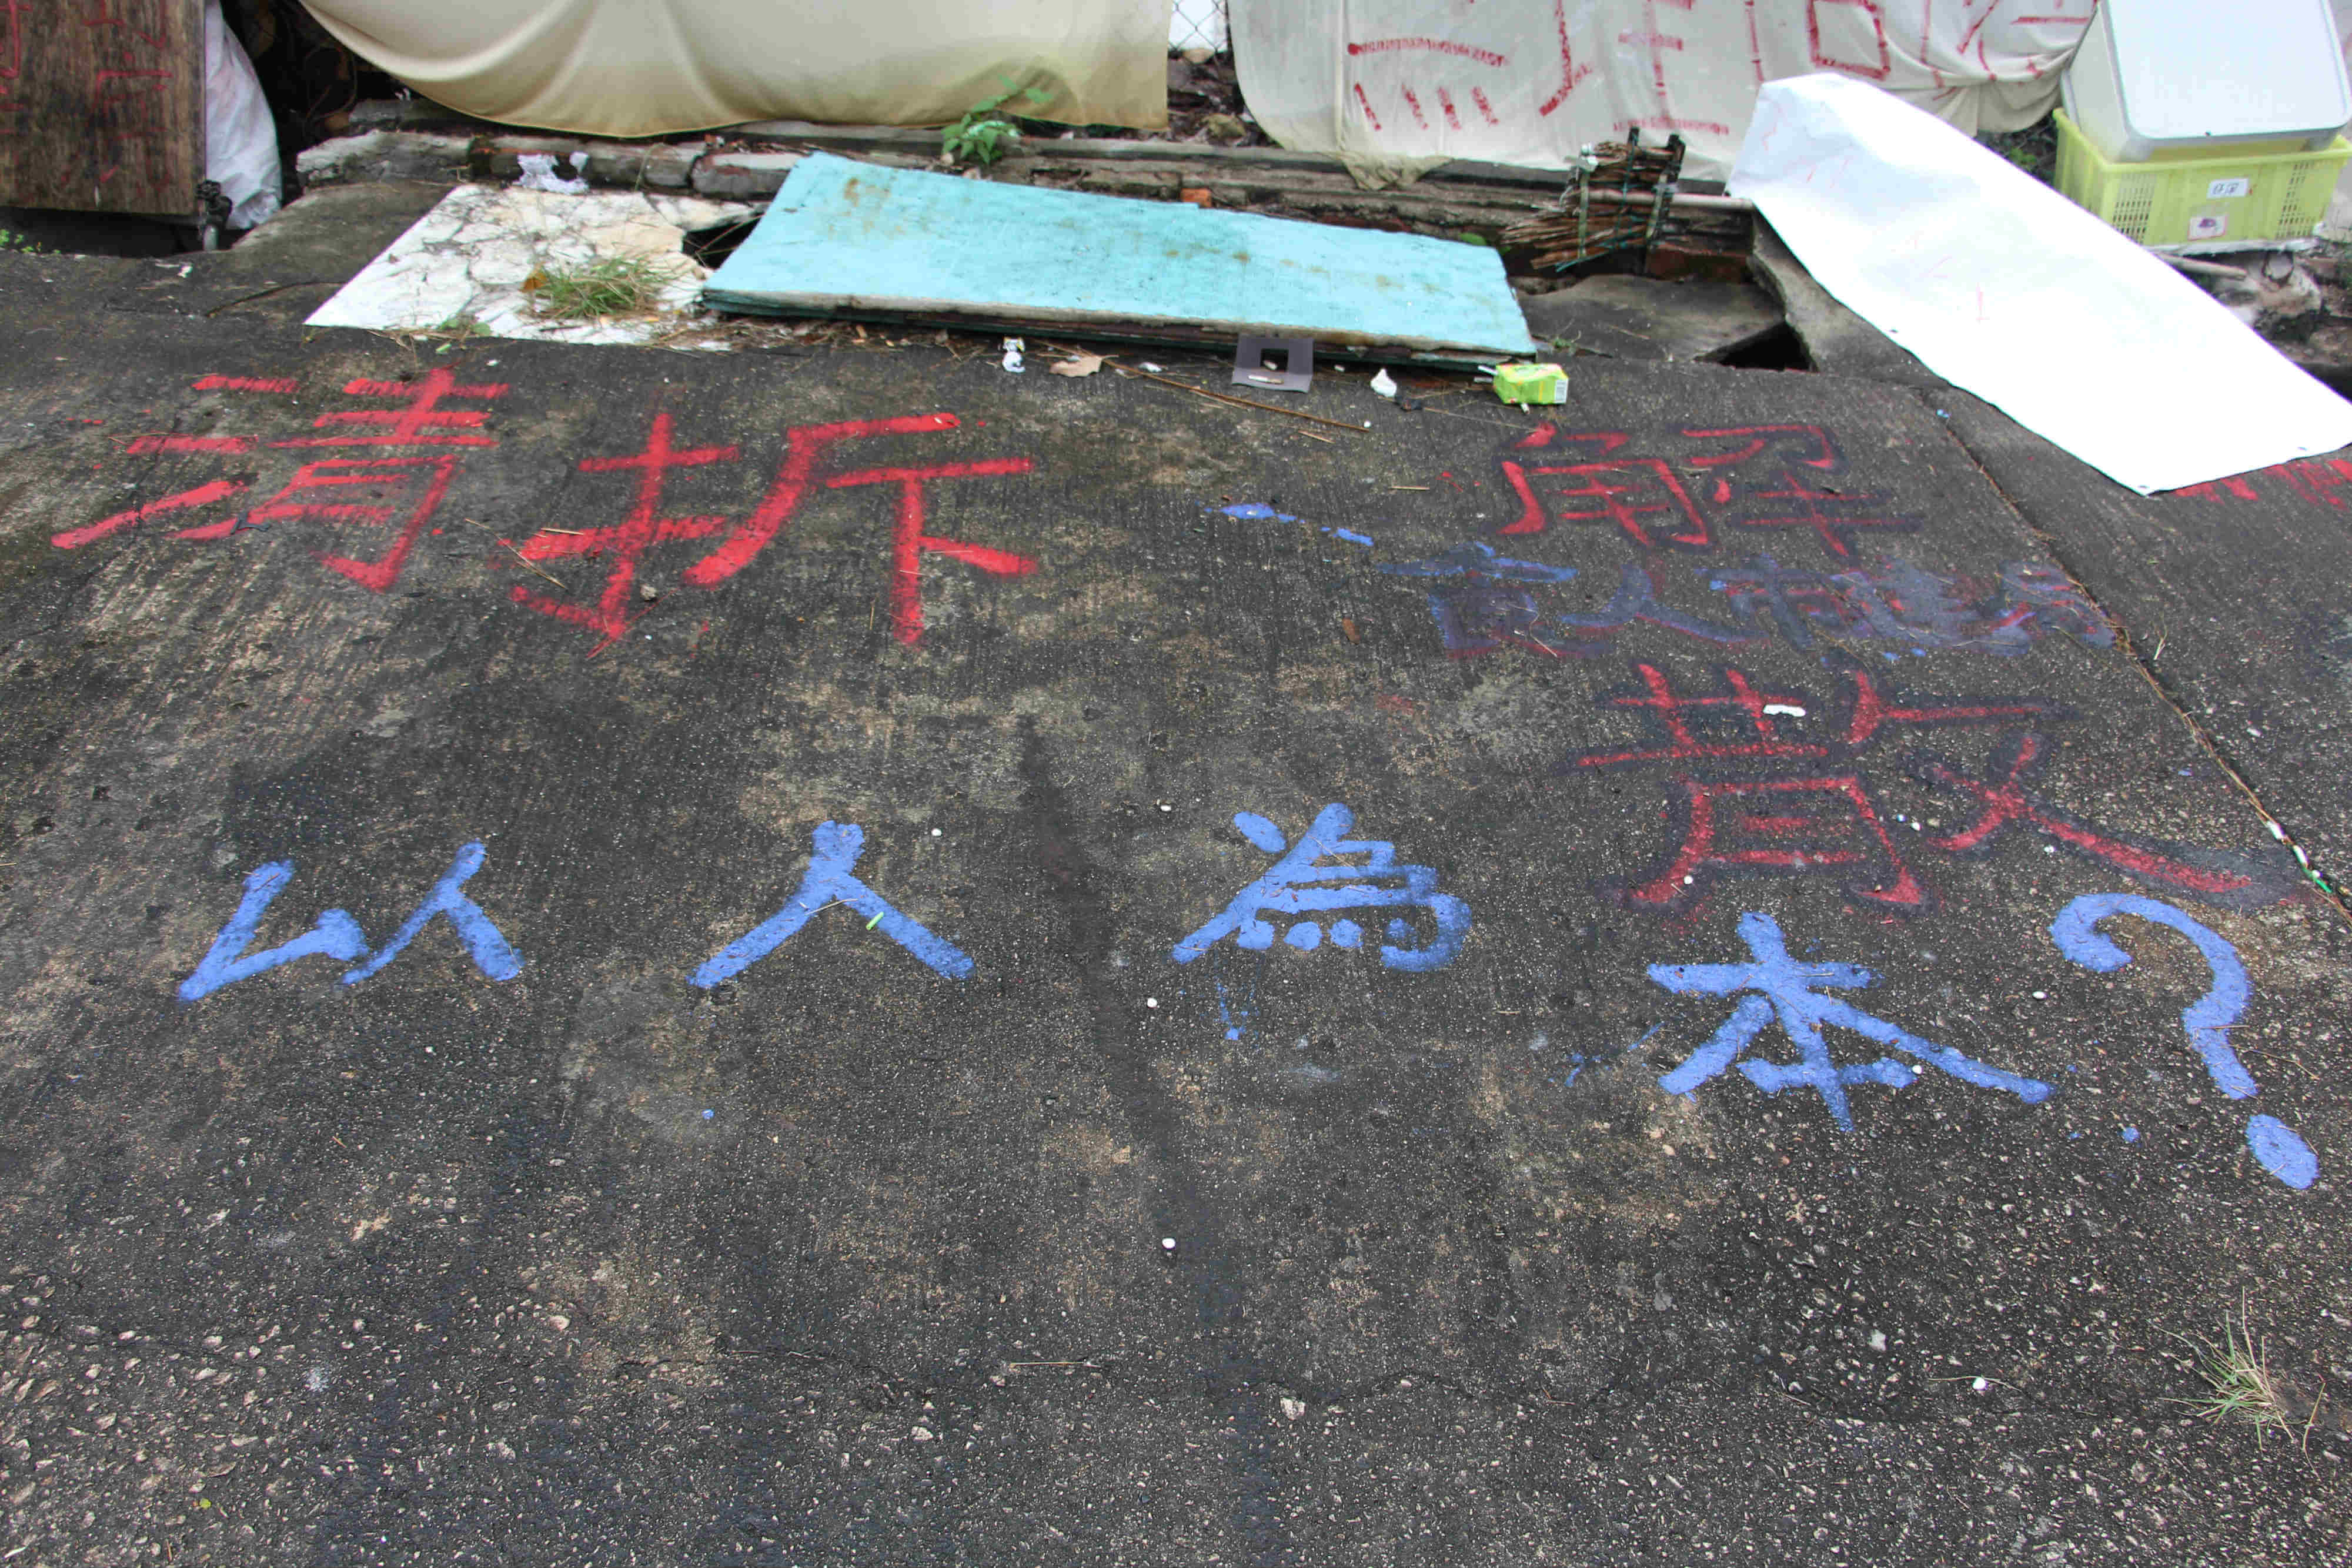 Graffiti on the ground is written